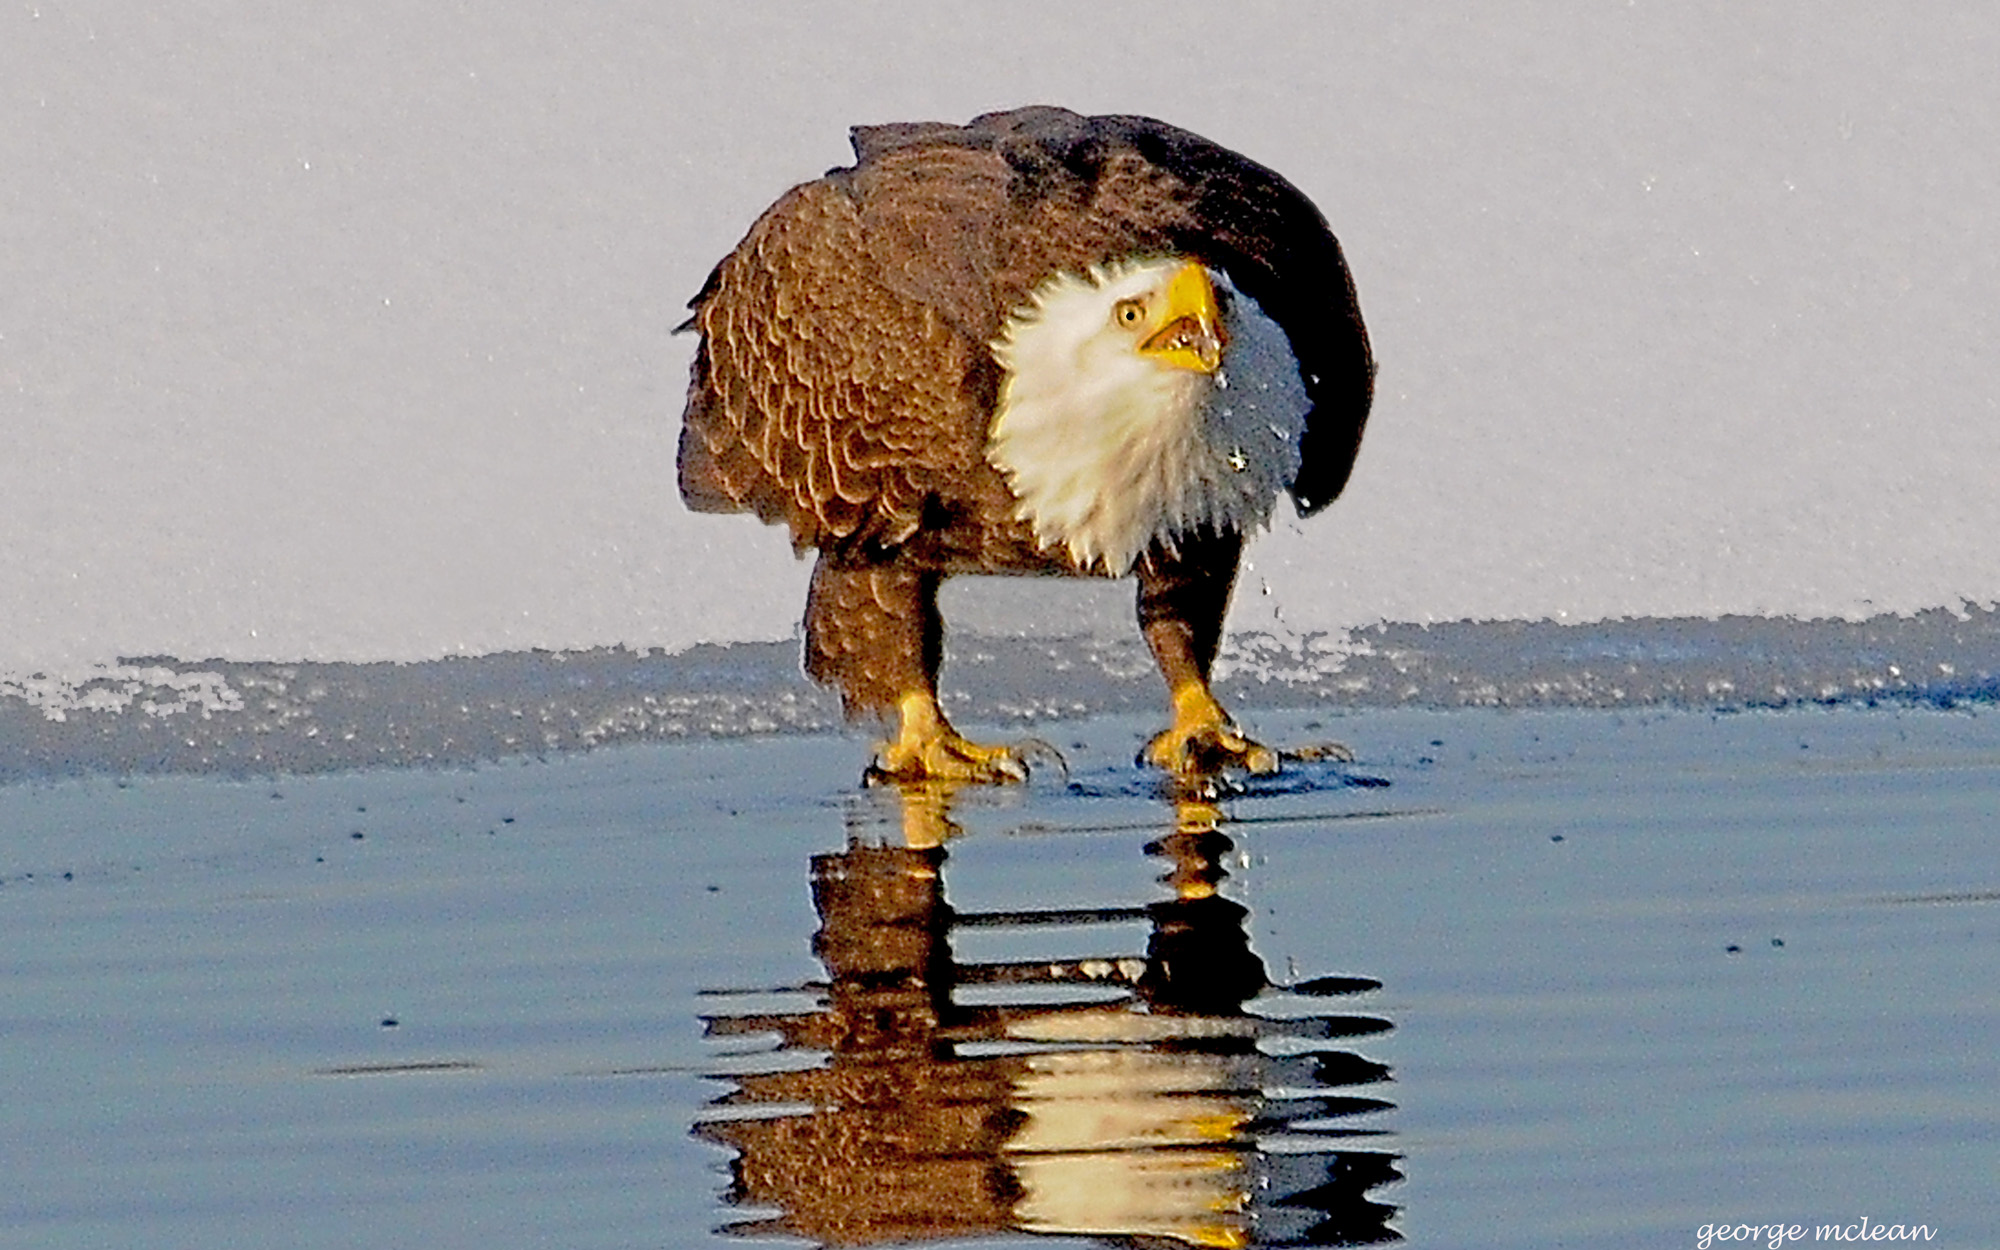 A bald eagle at the Mystic Lakes. Photo by George Mclean.